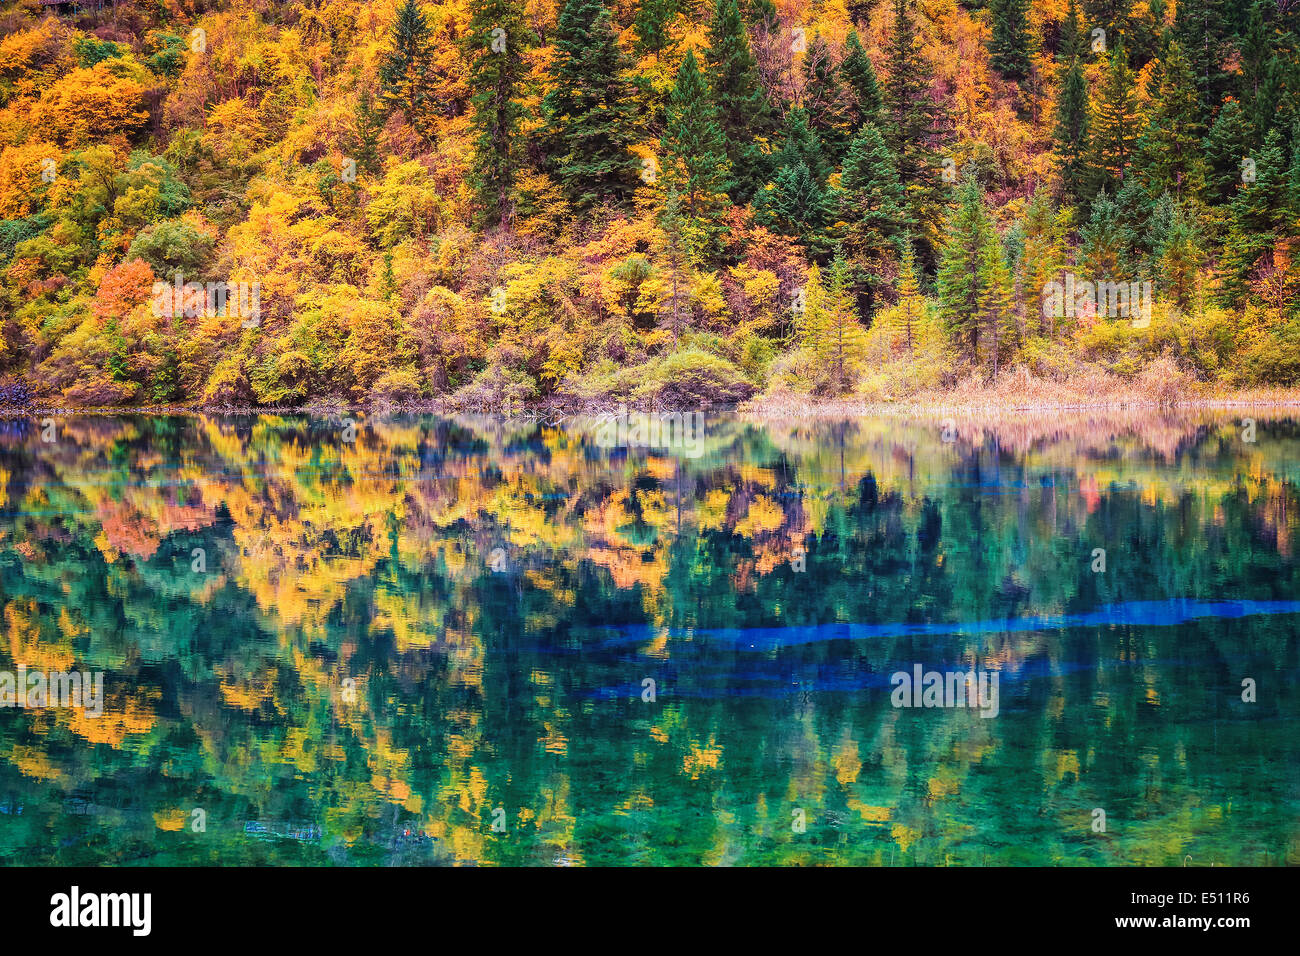 fall colors in lakefront - Stock Image